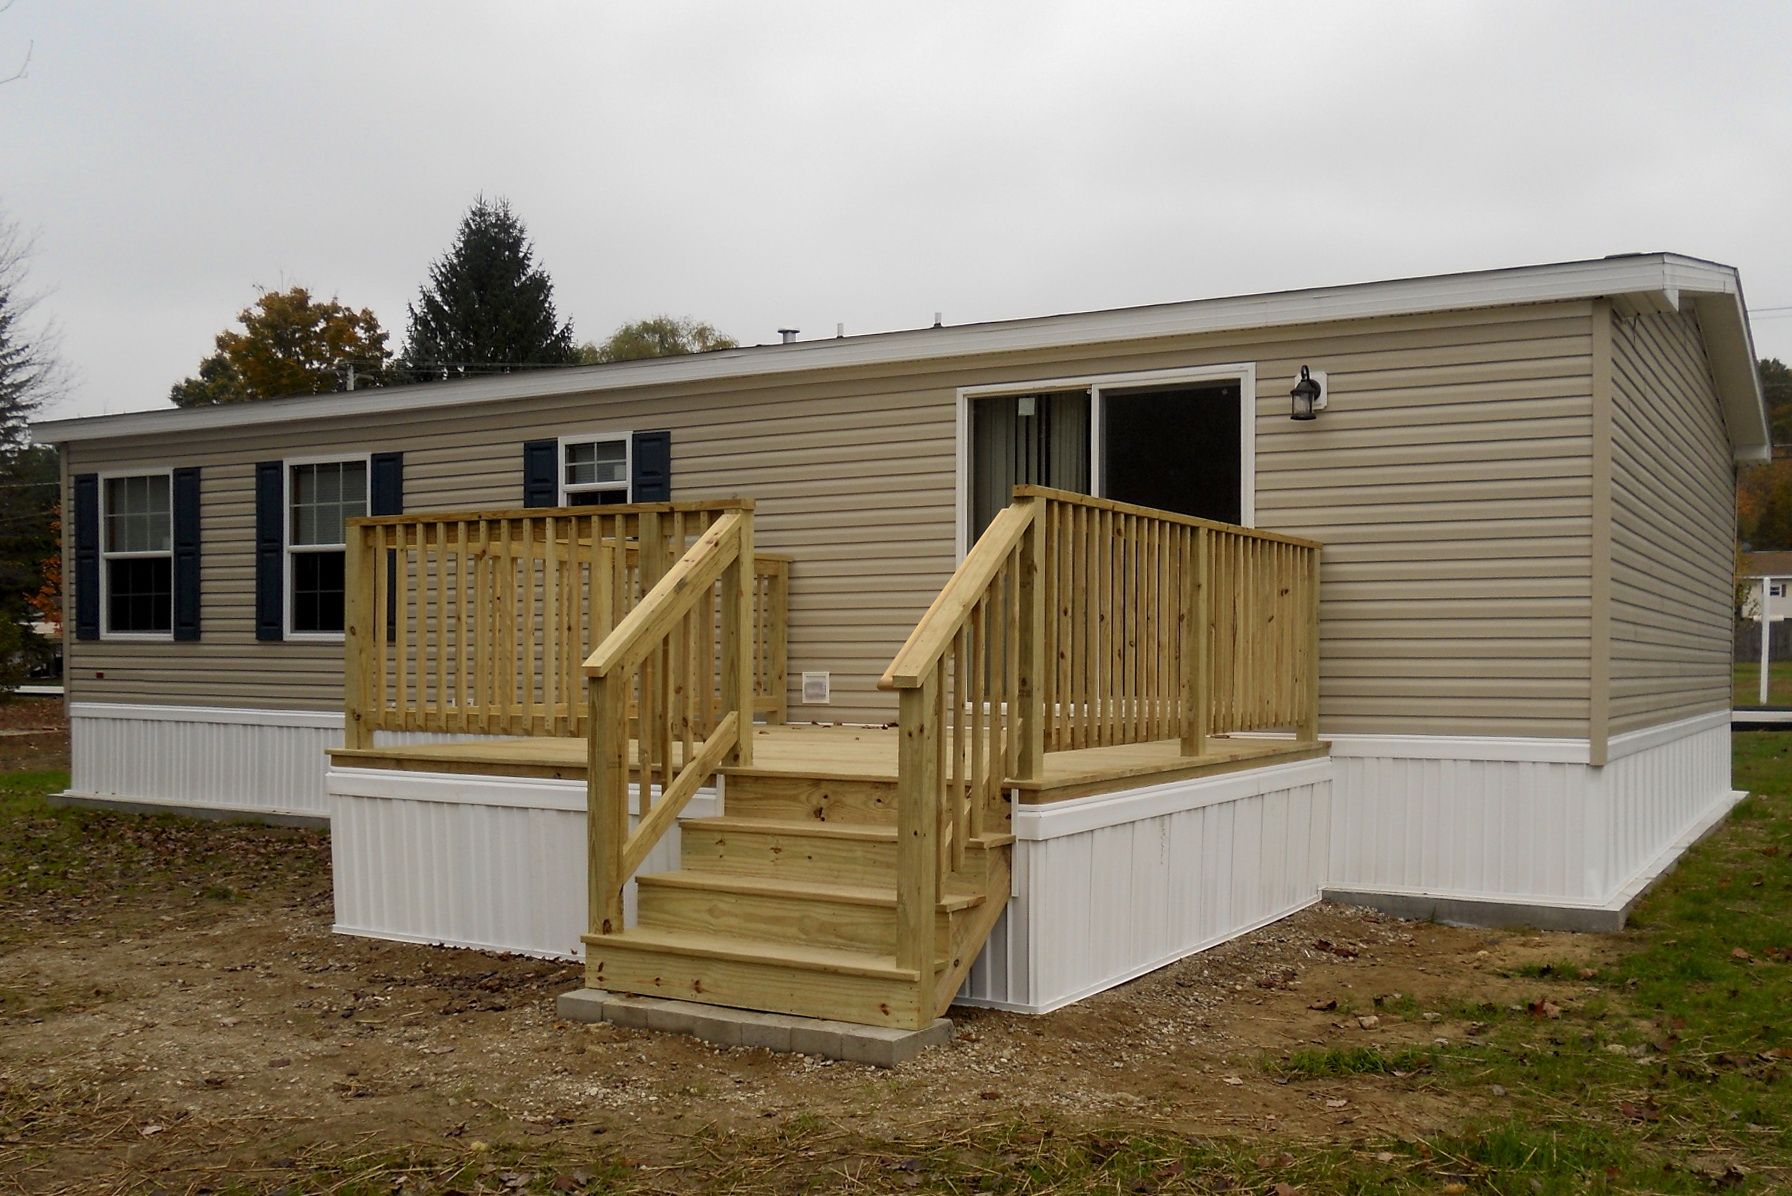 Back Decks For Mobile Homes Home Design Ideas Mobile Home